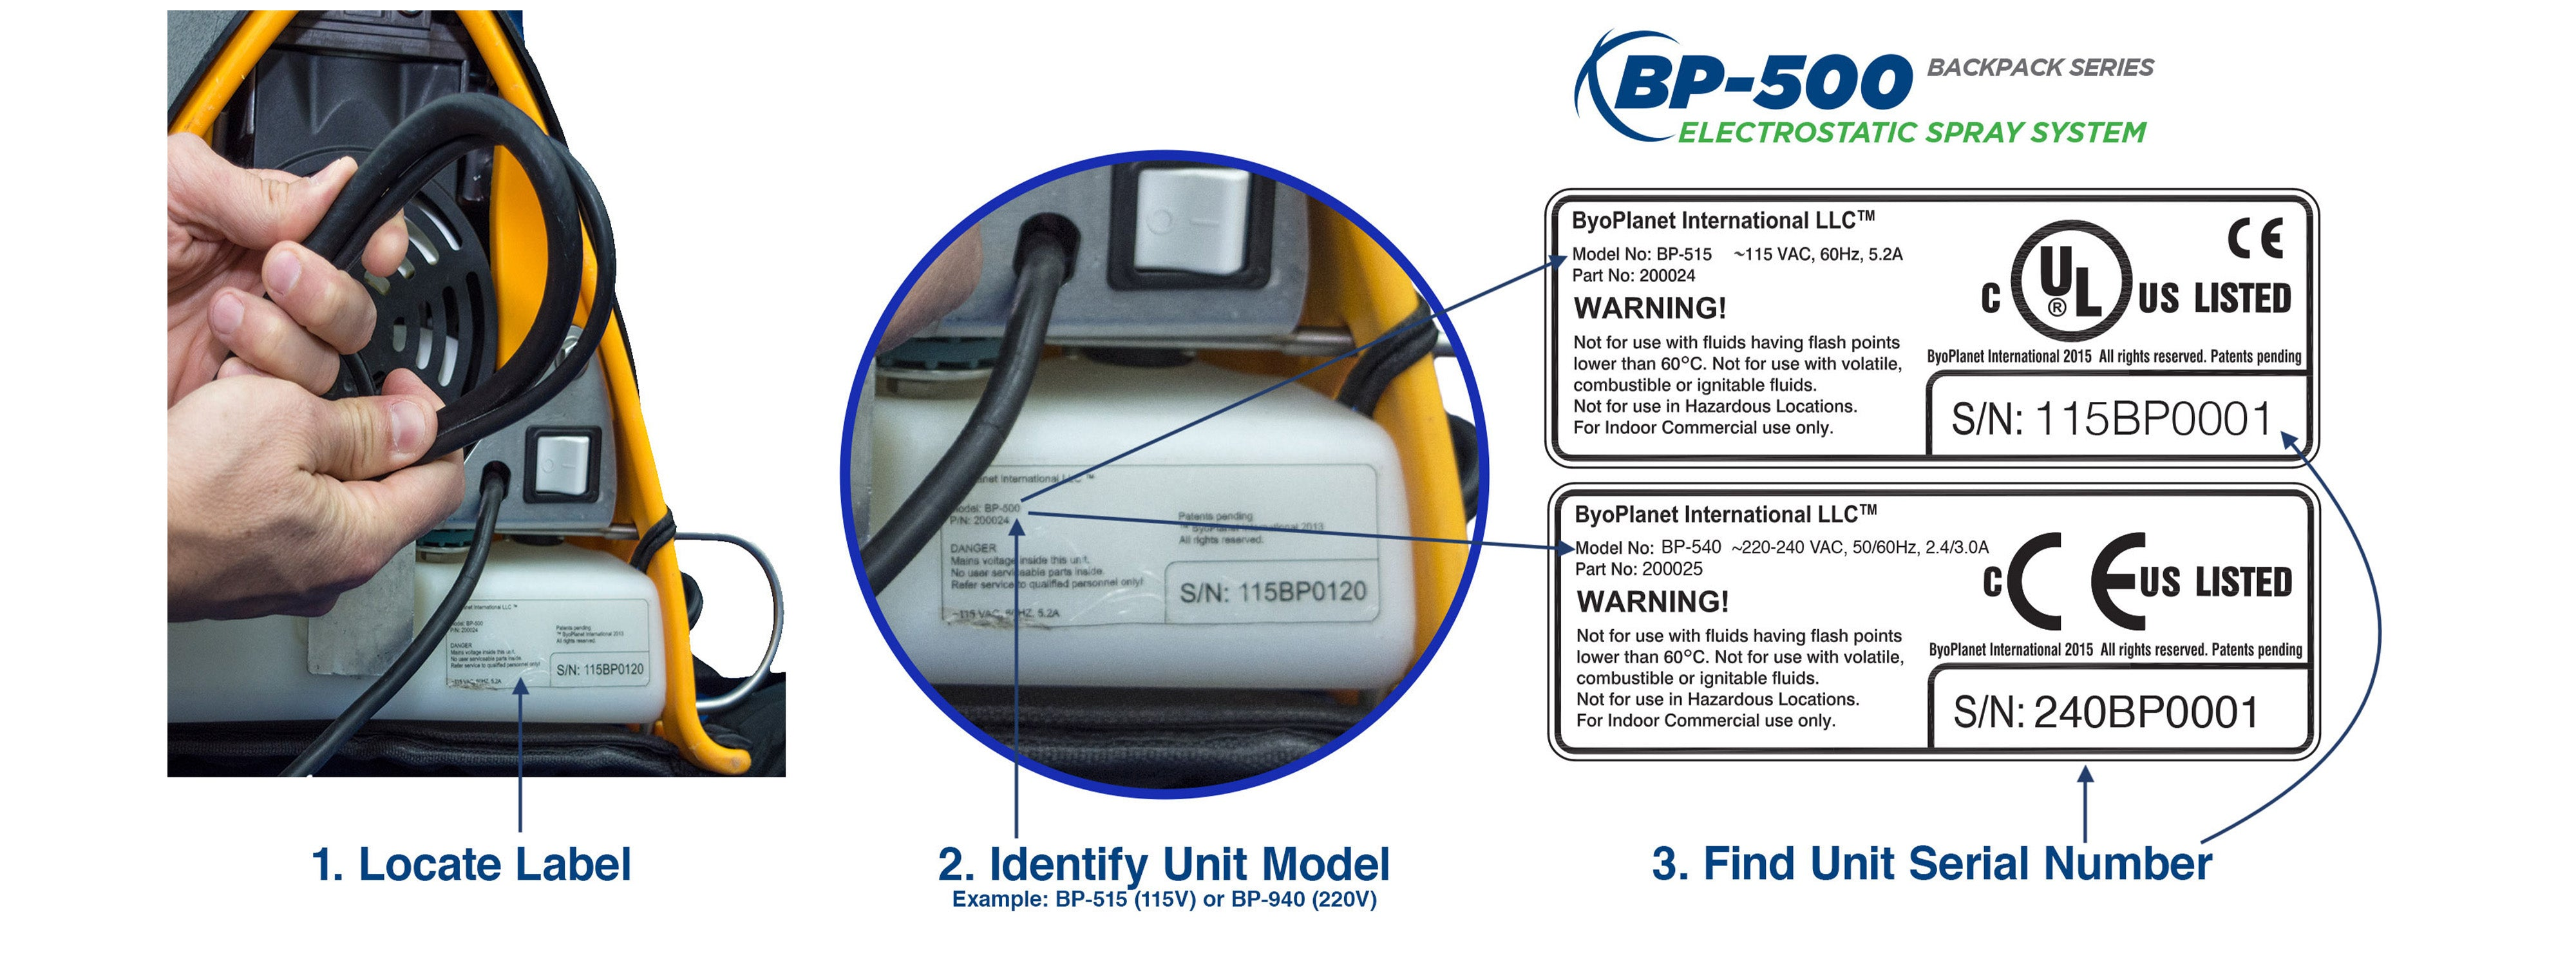 Find the Serial Number for Your BP-500™ Electrostatic Sprayer